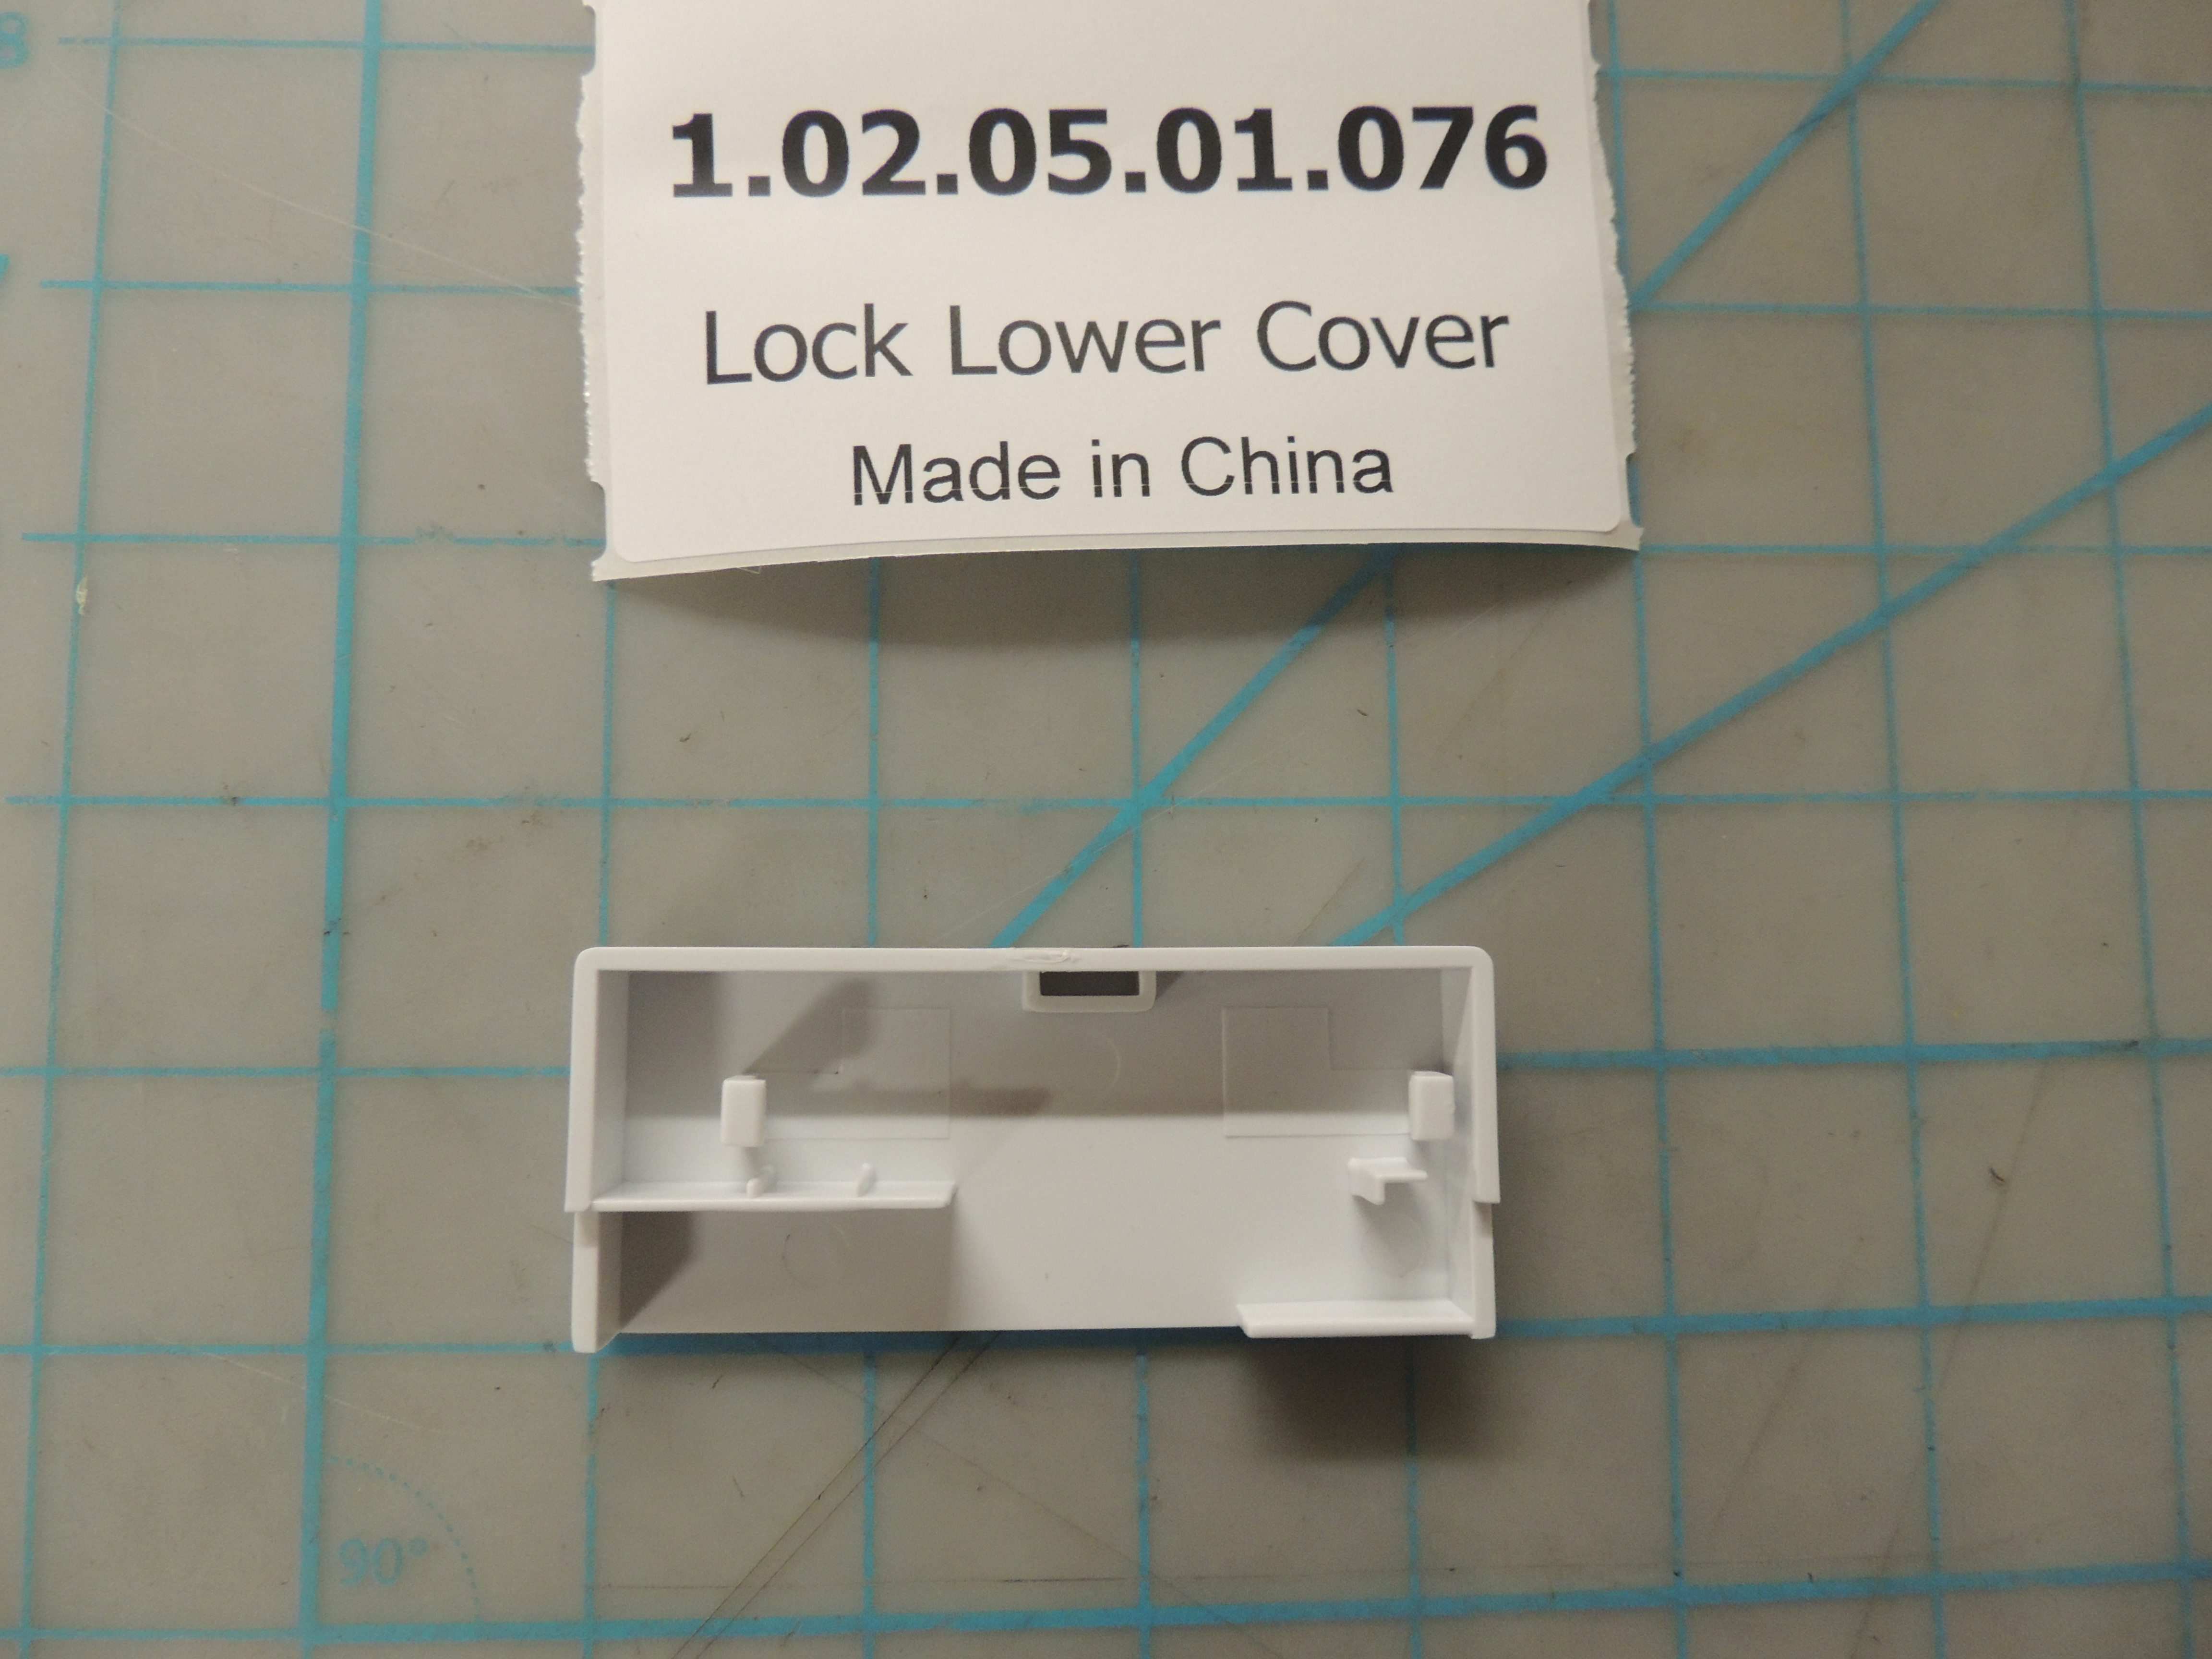 Lock Lower Cover